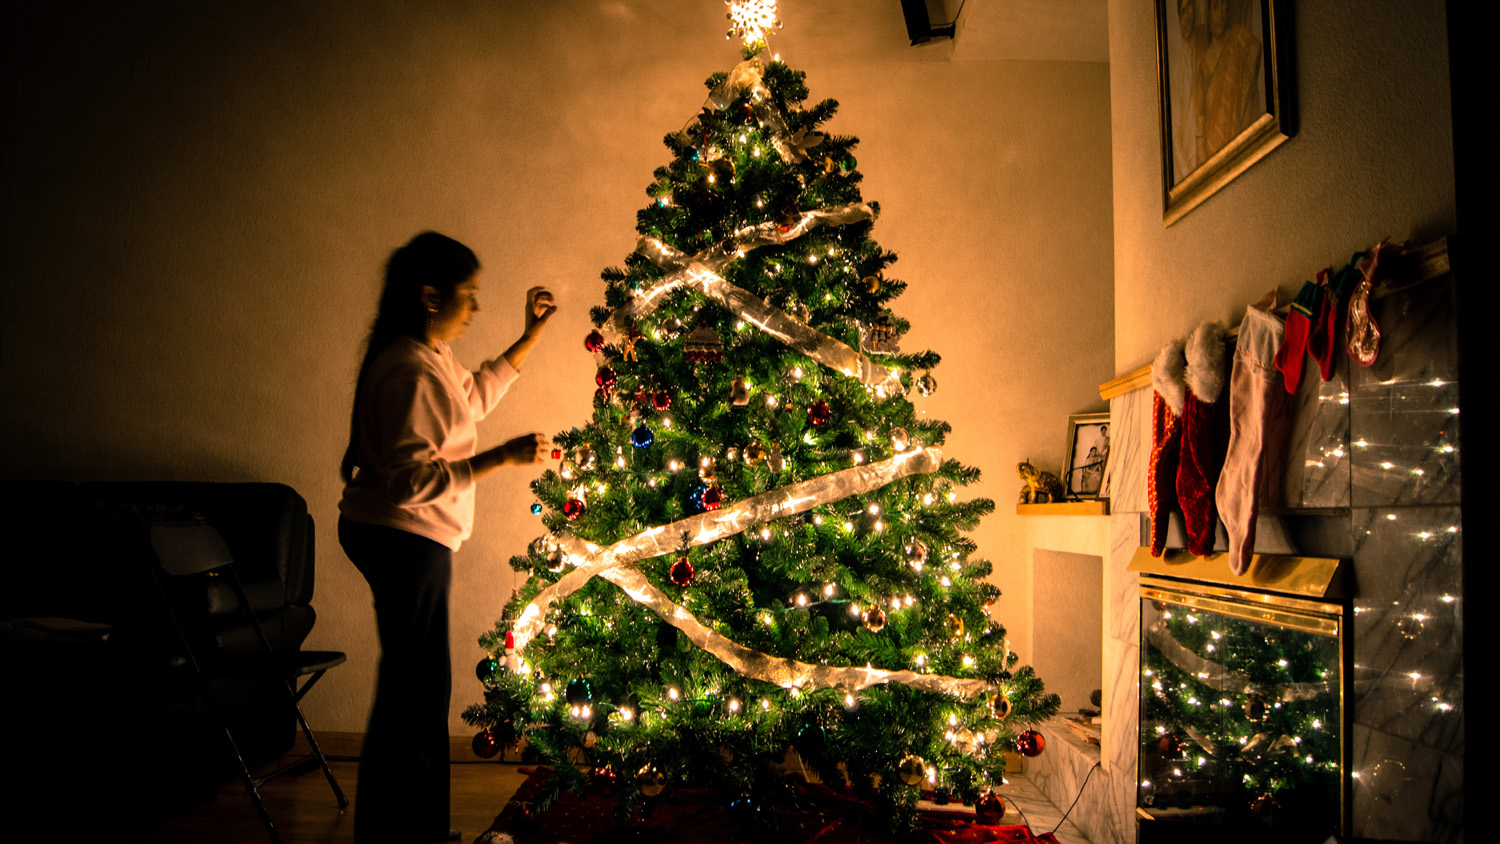 Girl decorating a lit Christmas tree in a semi-lit festively decorated room - used for the National Grid story 'The Christmas 'energy effect' revealed'